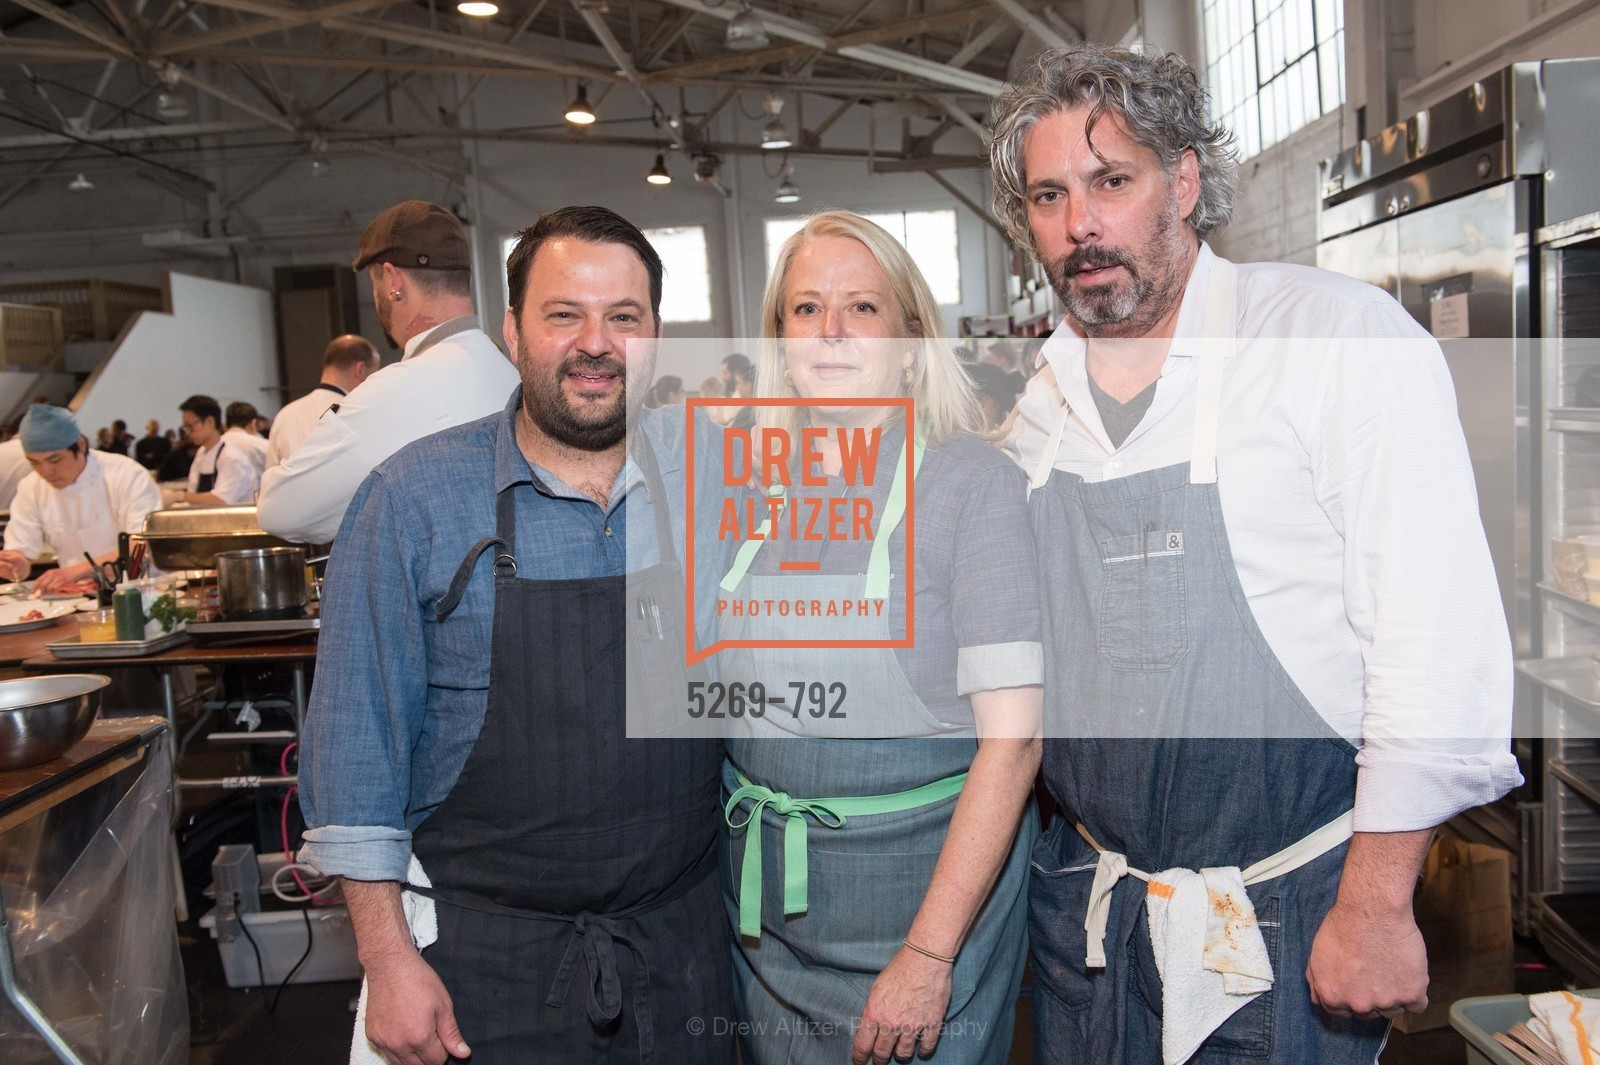 Stuart Brioza, Nancy Oakes, Richard Reddington, MEALS ON WHEELS OF SAN FRANCISCO'S 28th Annual Star Chefs and Vintners Gala, US, April 20th, 2015,Drew Altizer, Drew Altizer Photography, full-service agency, private events, San Francisco photographer, photographer california